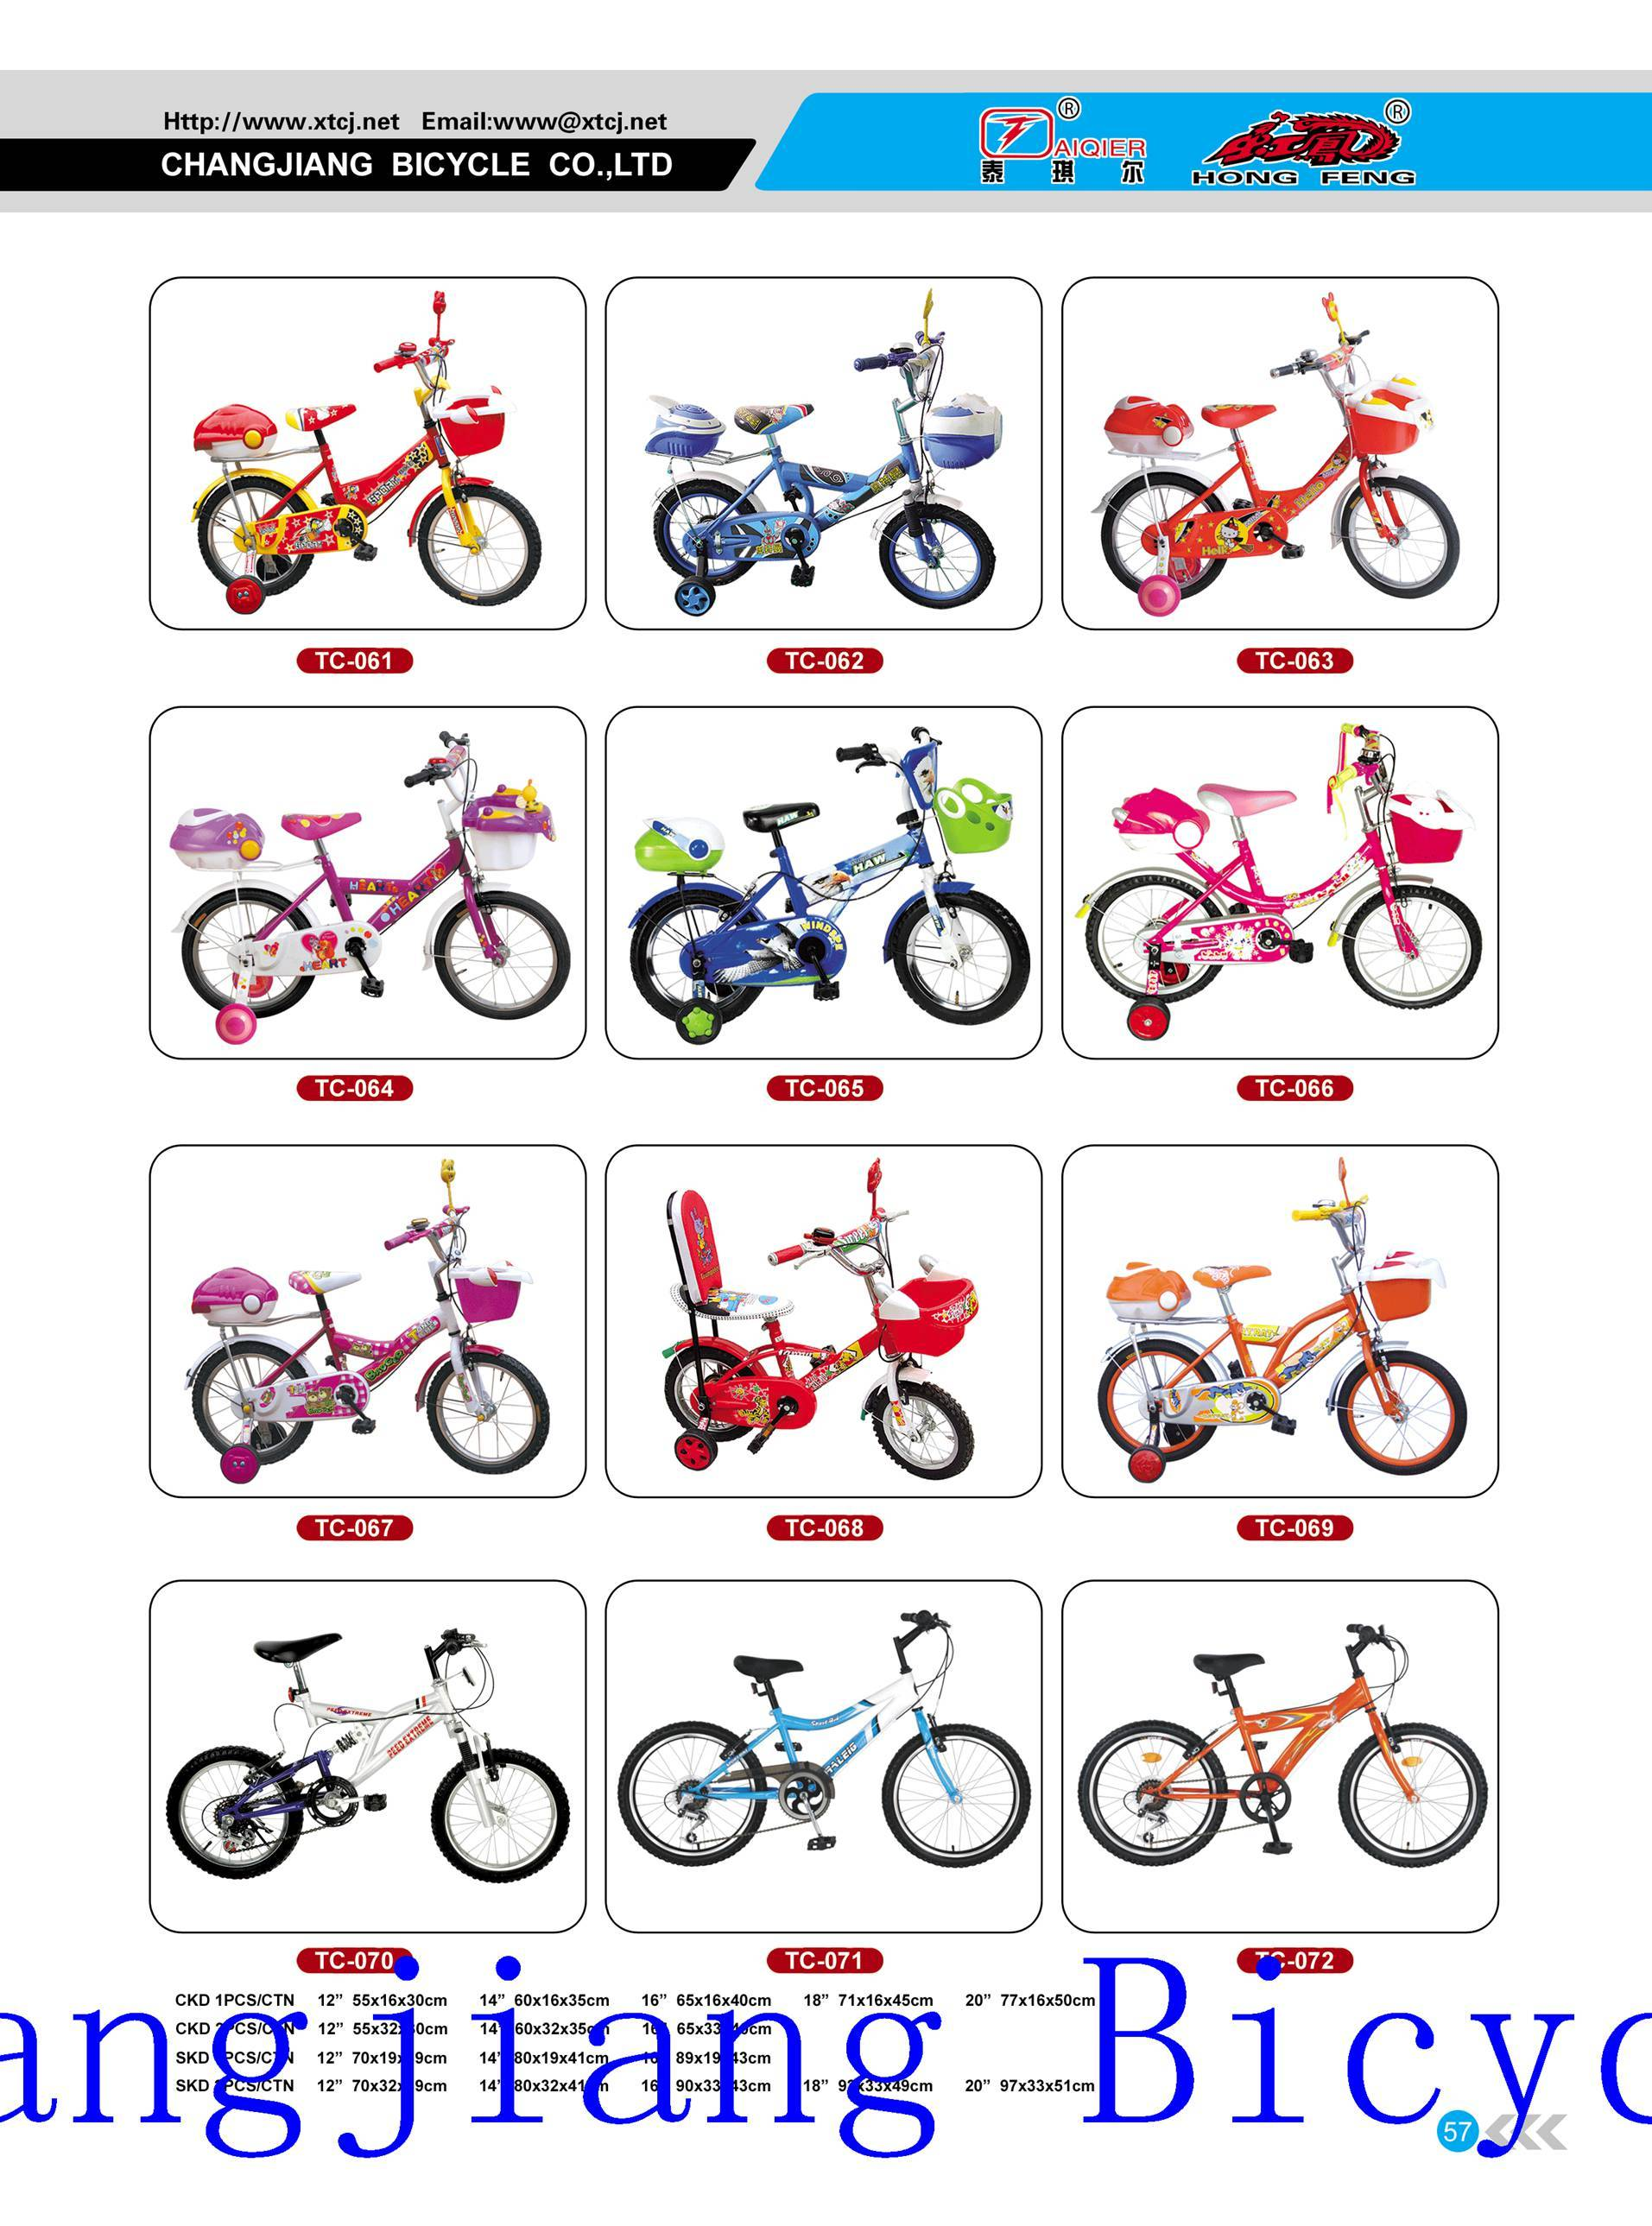 supply all kinds of bicycles, especialy children bicycle